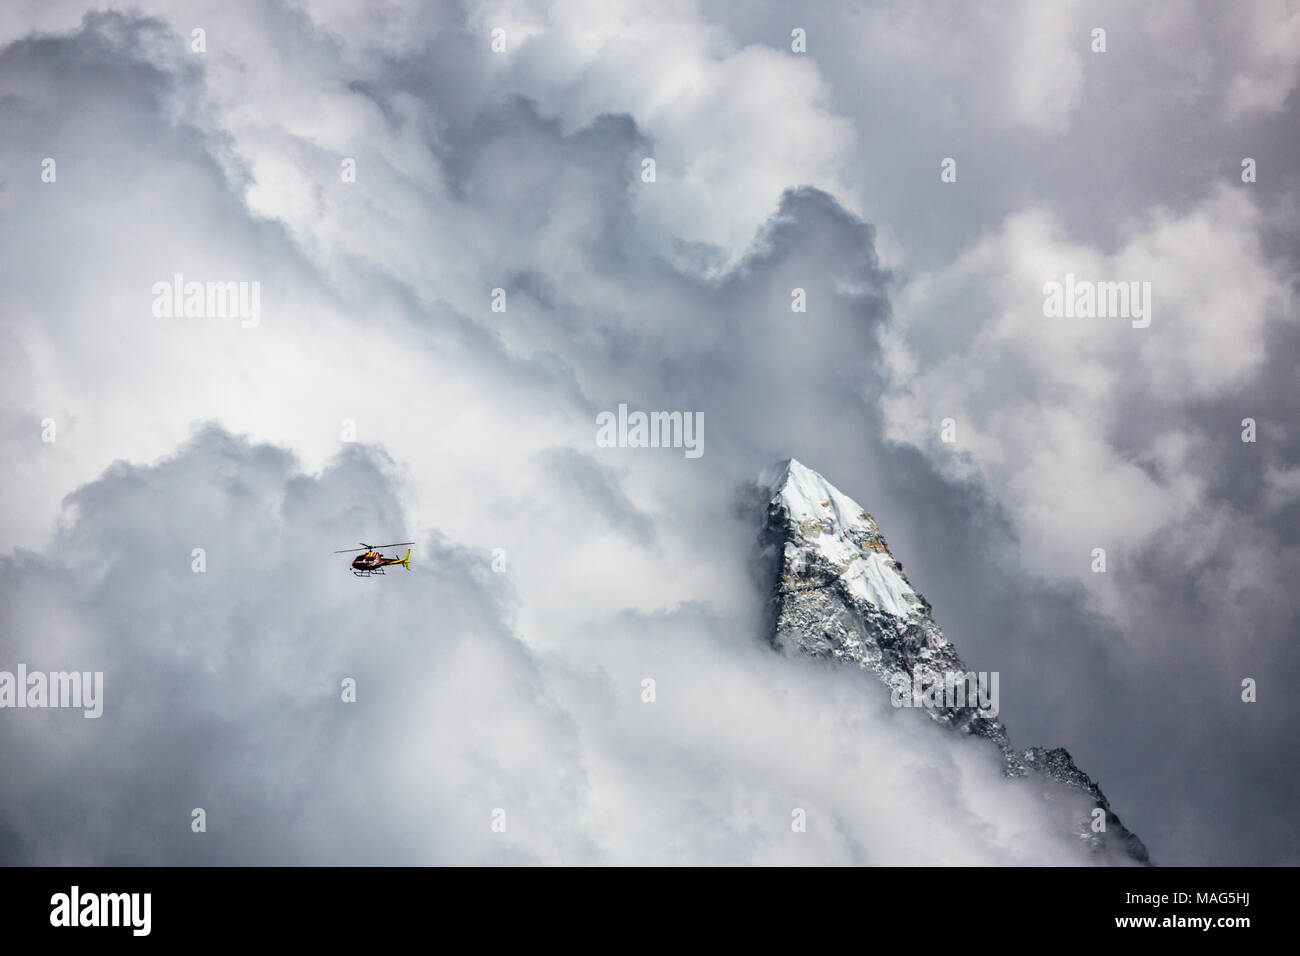 A Eurocopter flying in dangerous conditions at 15,000ft in the clouds but still below mountain peaks on its way to base camp of Mt. Everest. Nepal - Stock Image